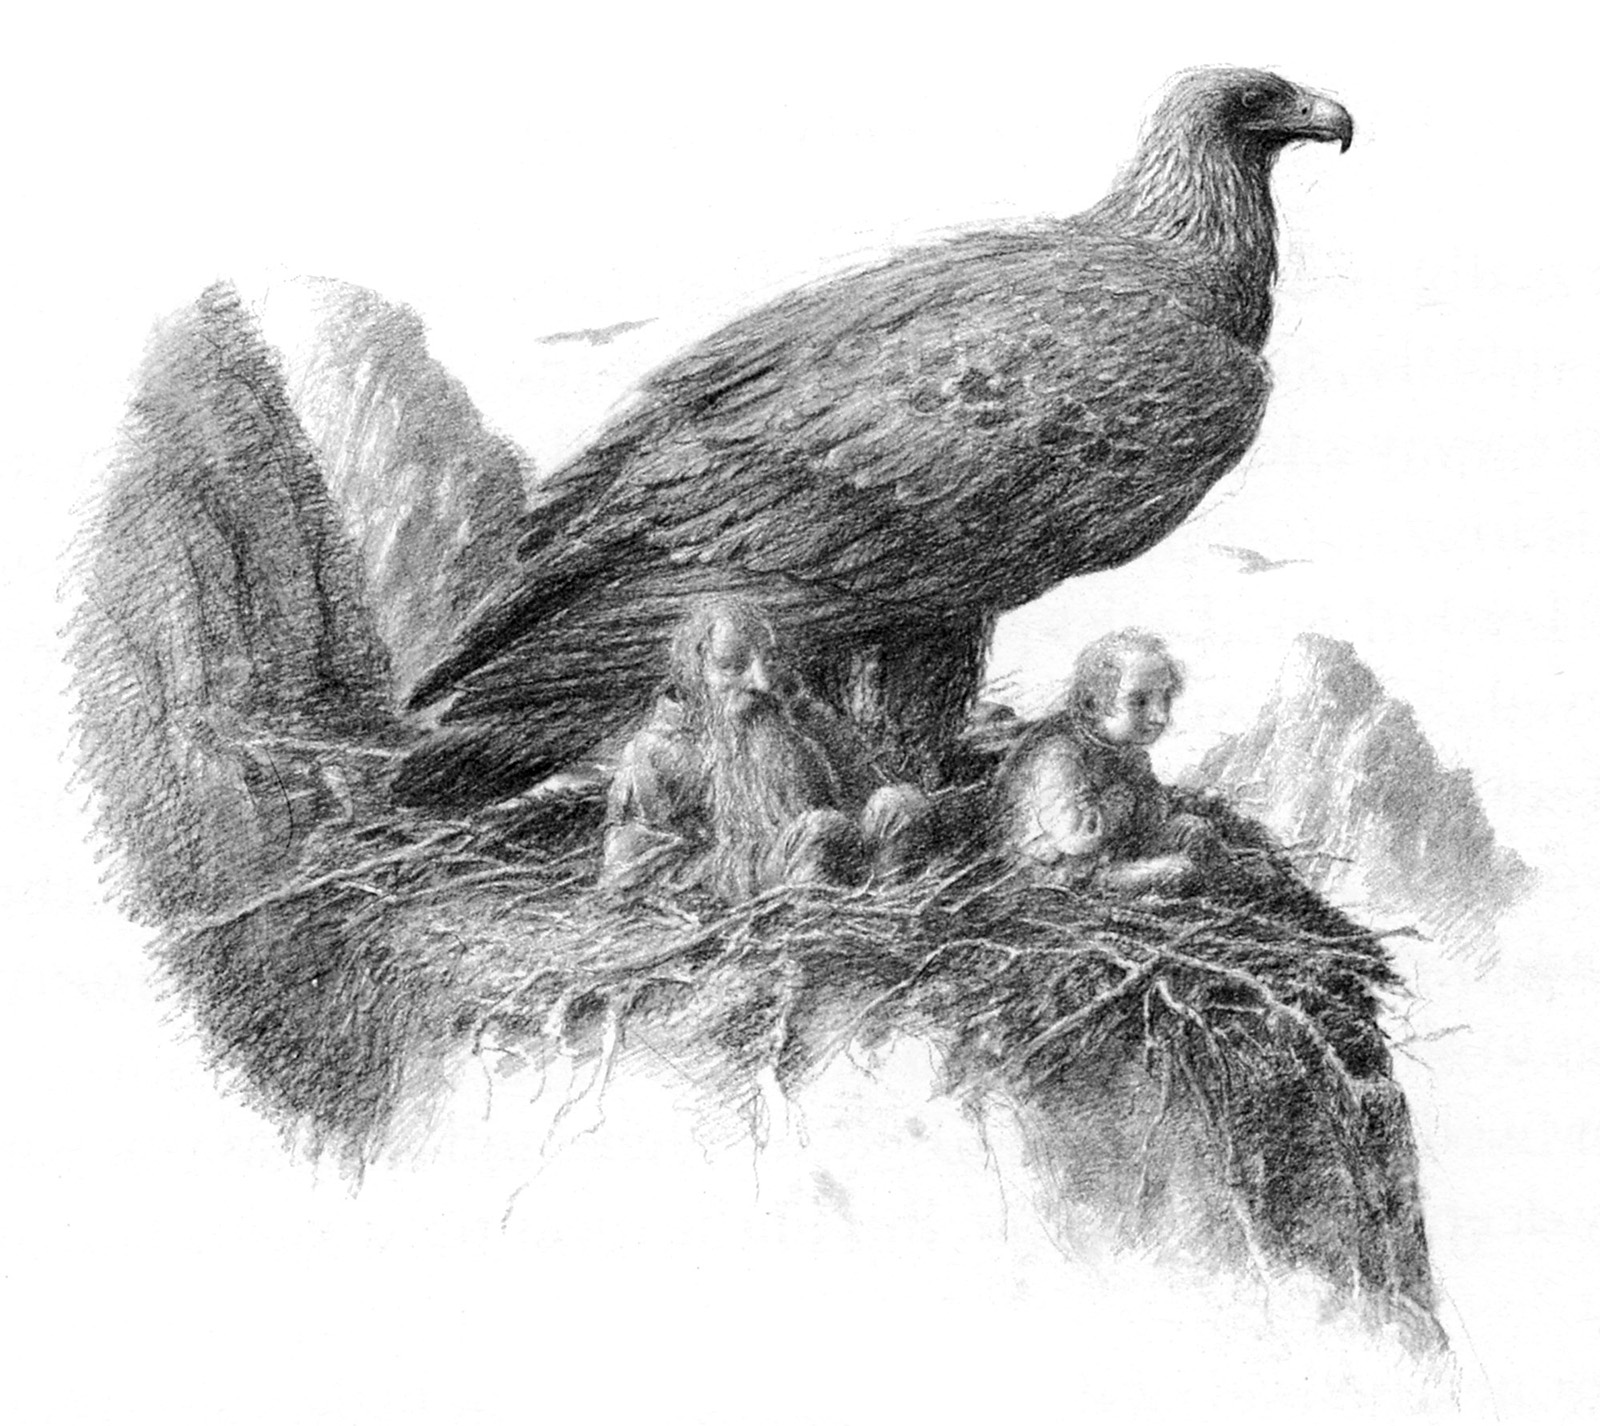 Bilbo, a dwarf, and an eagle in its nest